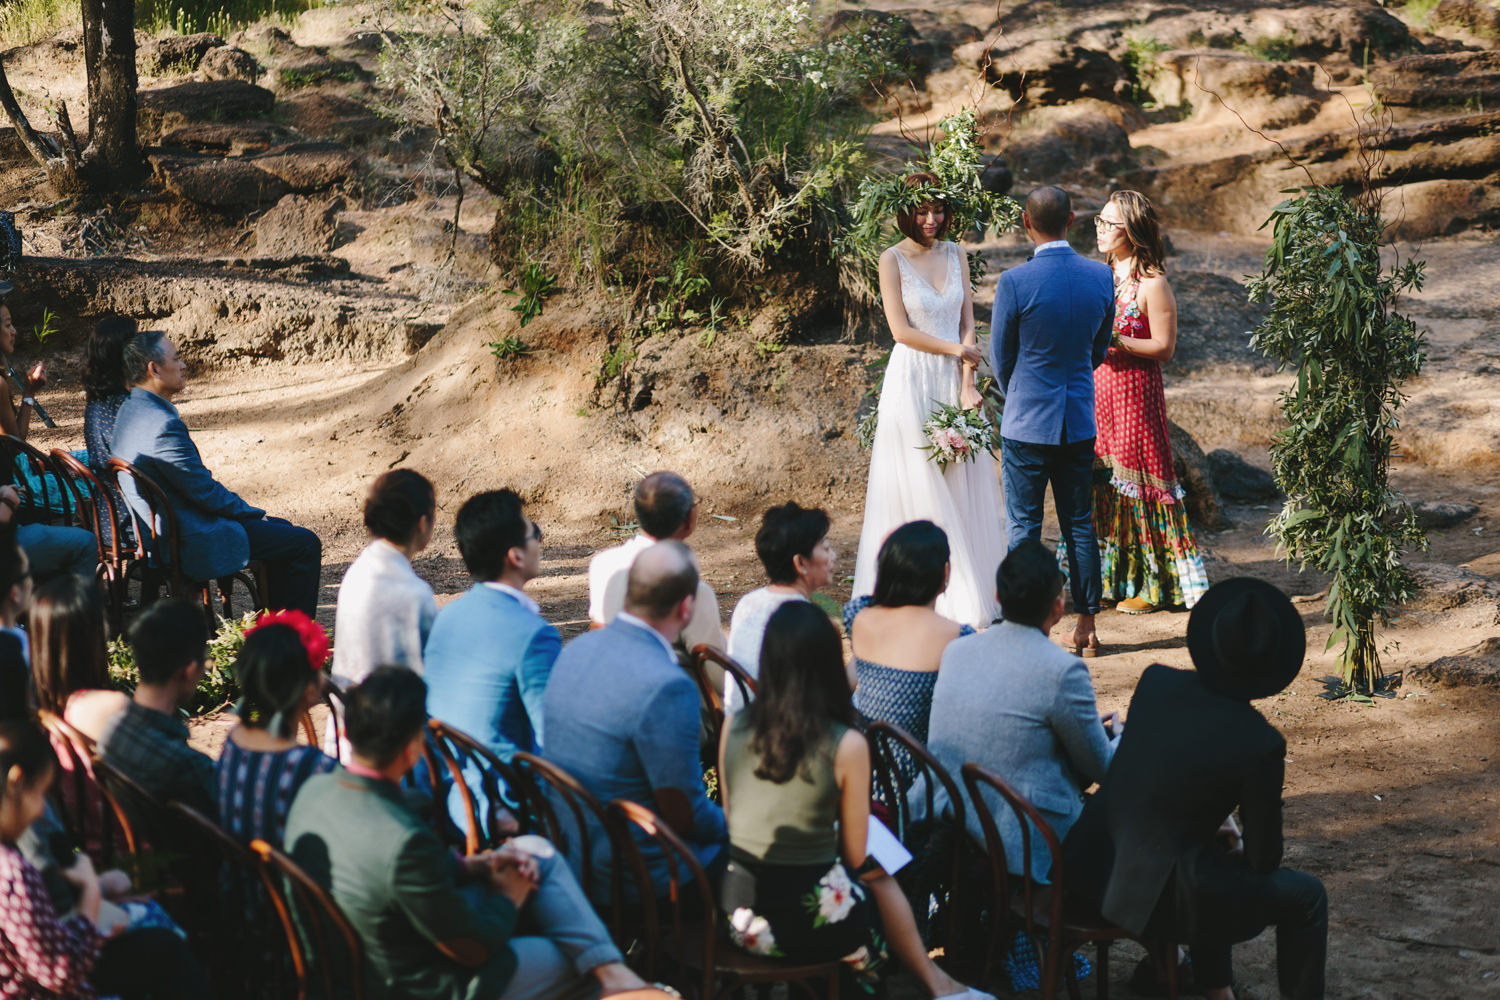 092-Barn_Wedding_Australia_Sam_Ting.jpg